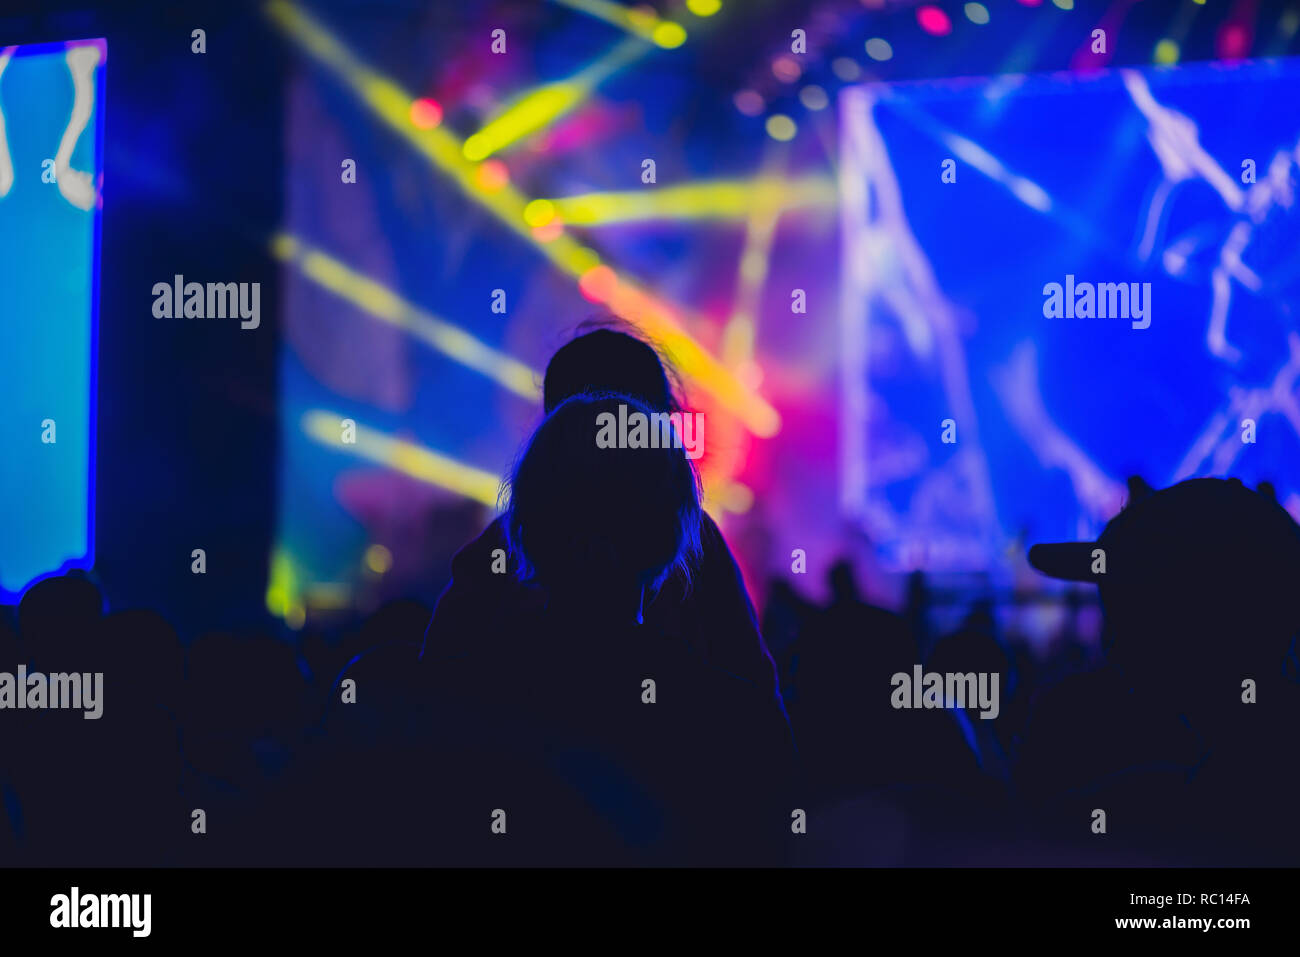 Silhouette of a big crowd at concert against a brightly lit stage. Night time rock concert with people having fun lifting hands up in the air and cheering the musicians - Stock Image